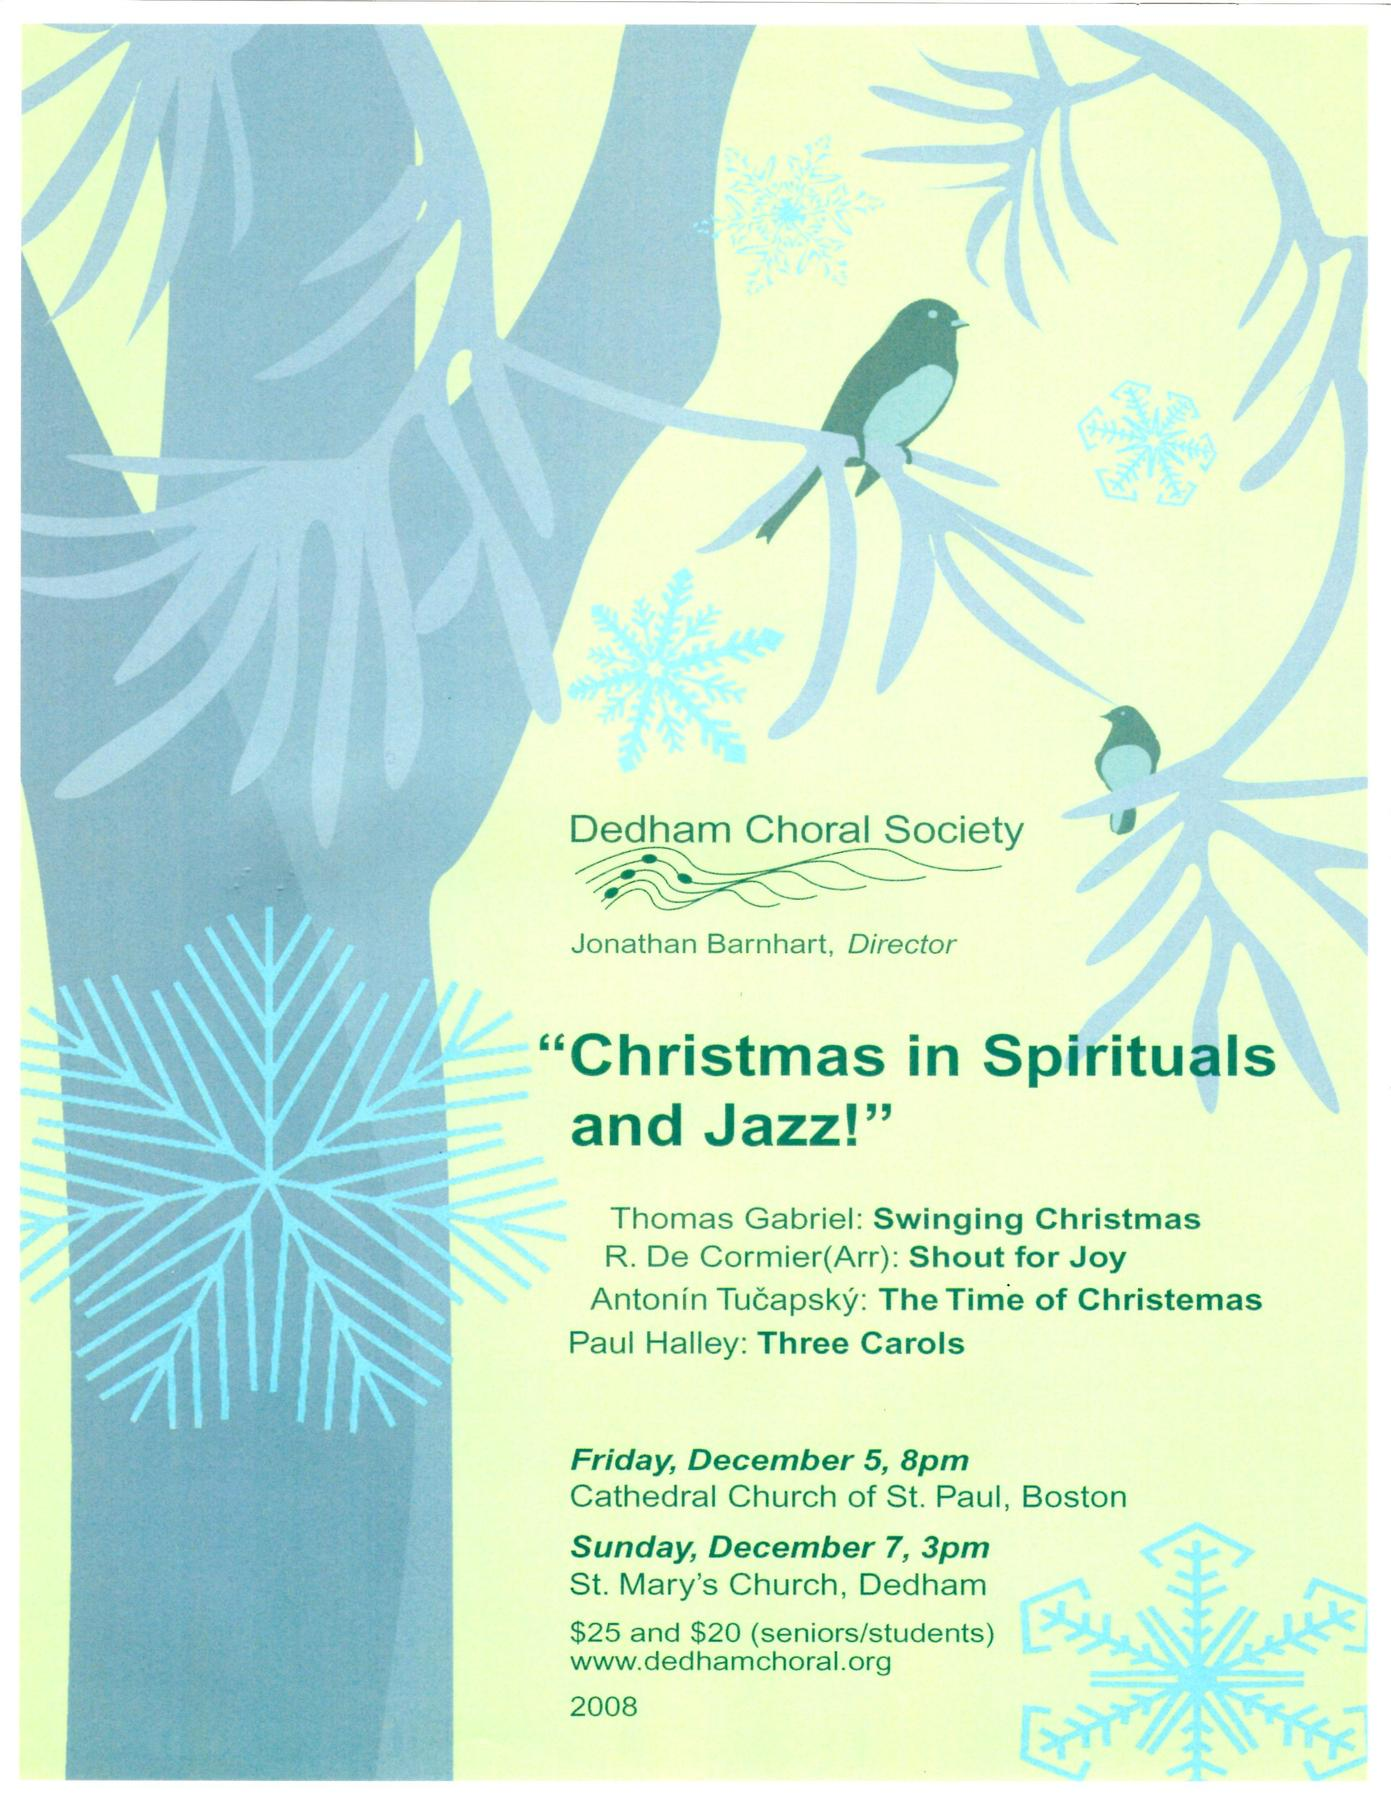 Dedham Choral Society – Christmas in Spirituals and Jazz! (Winter 2008)